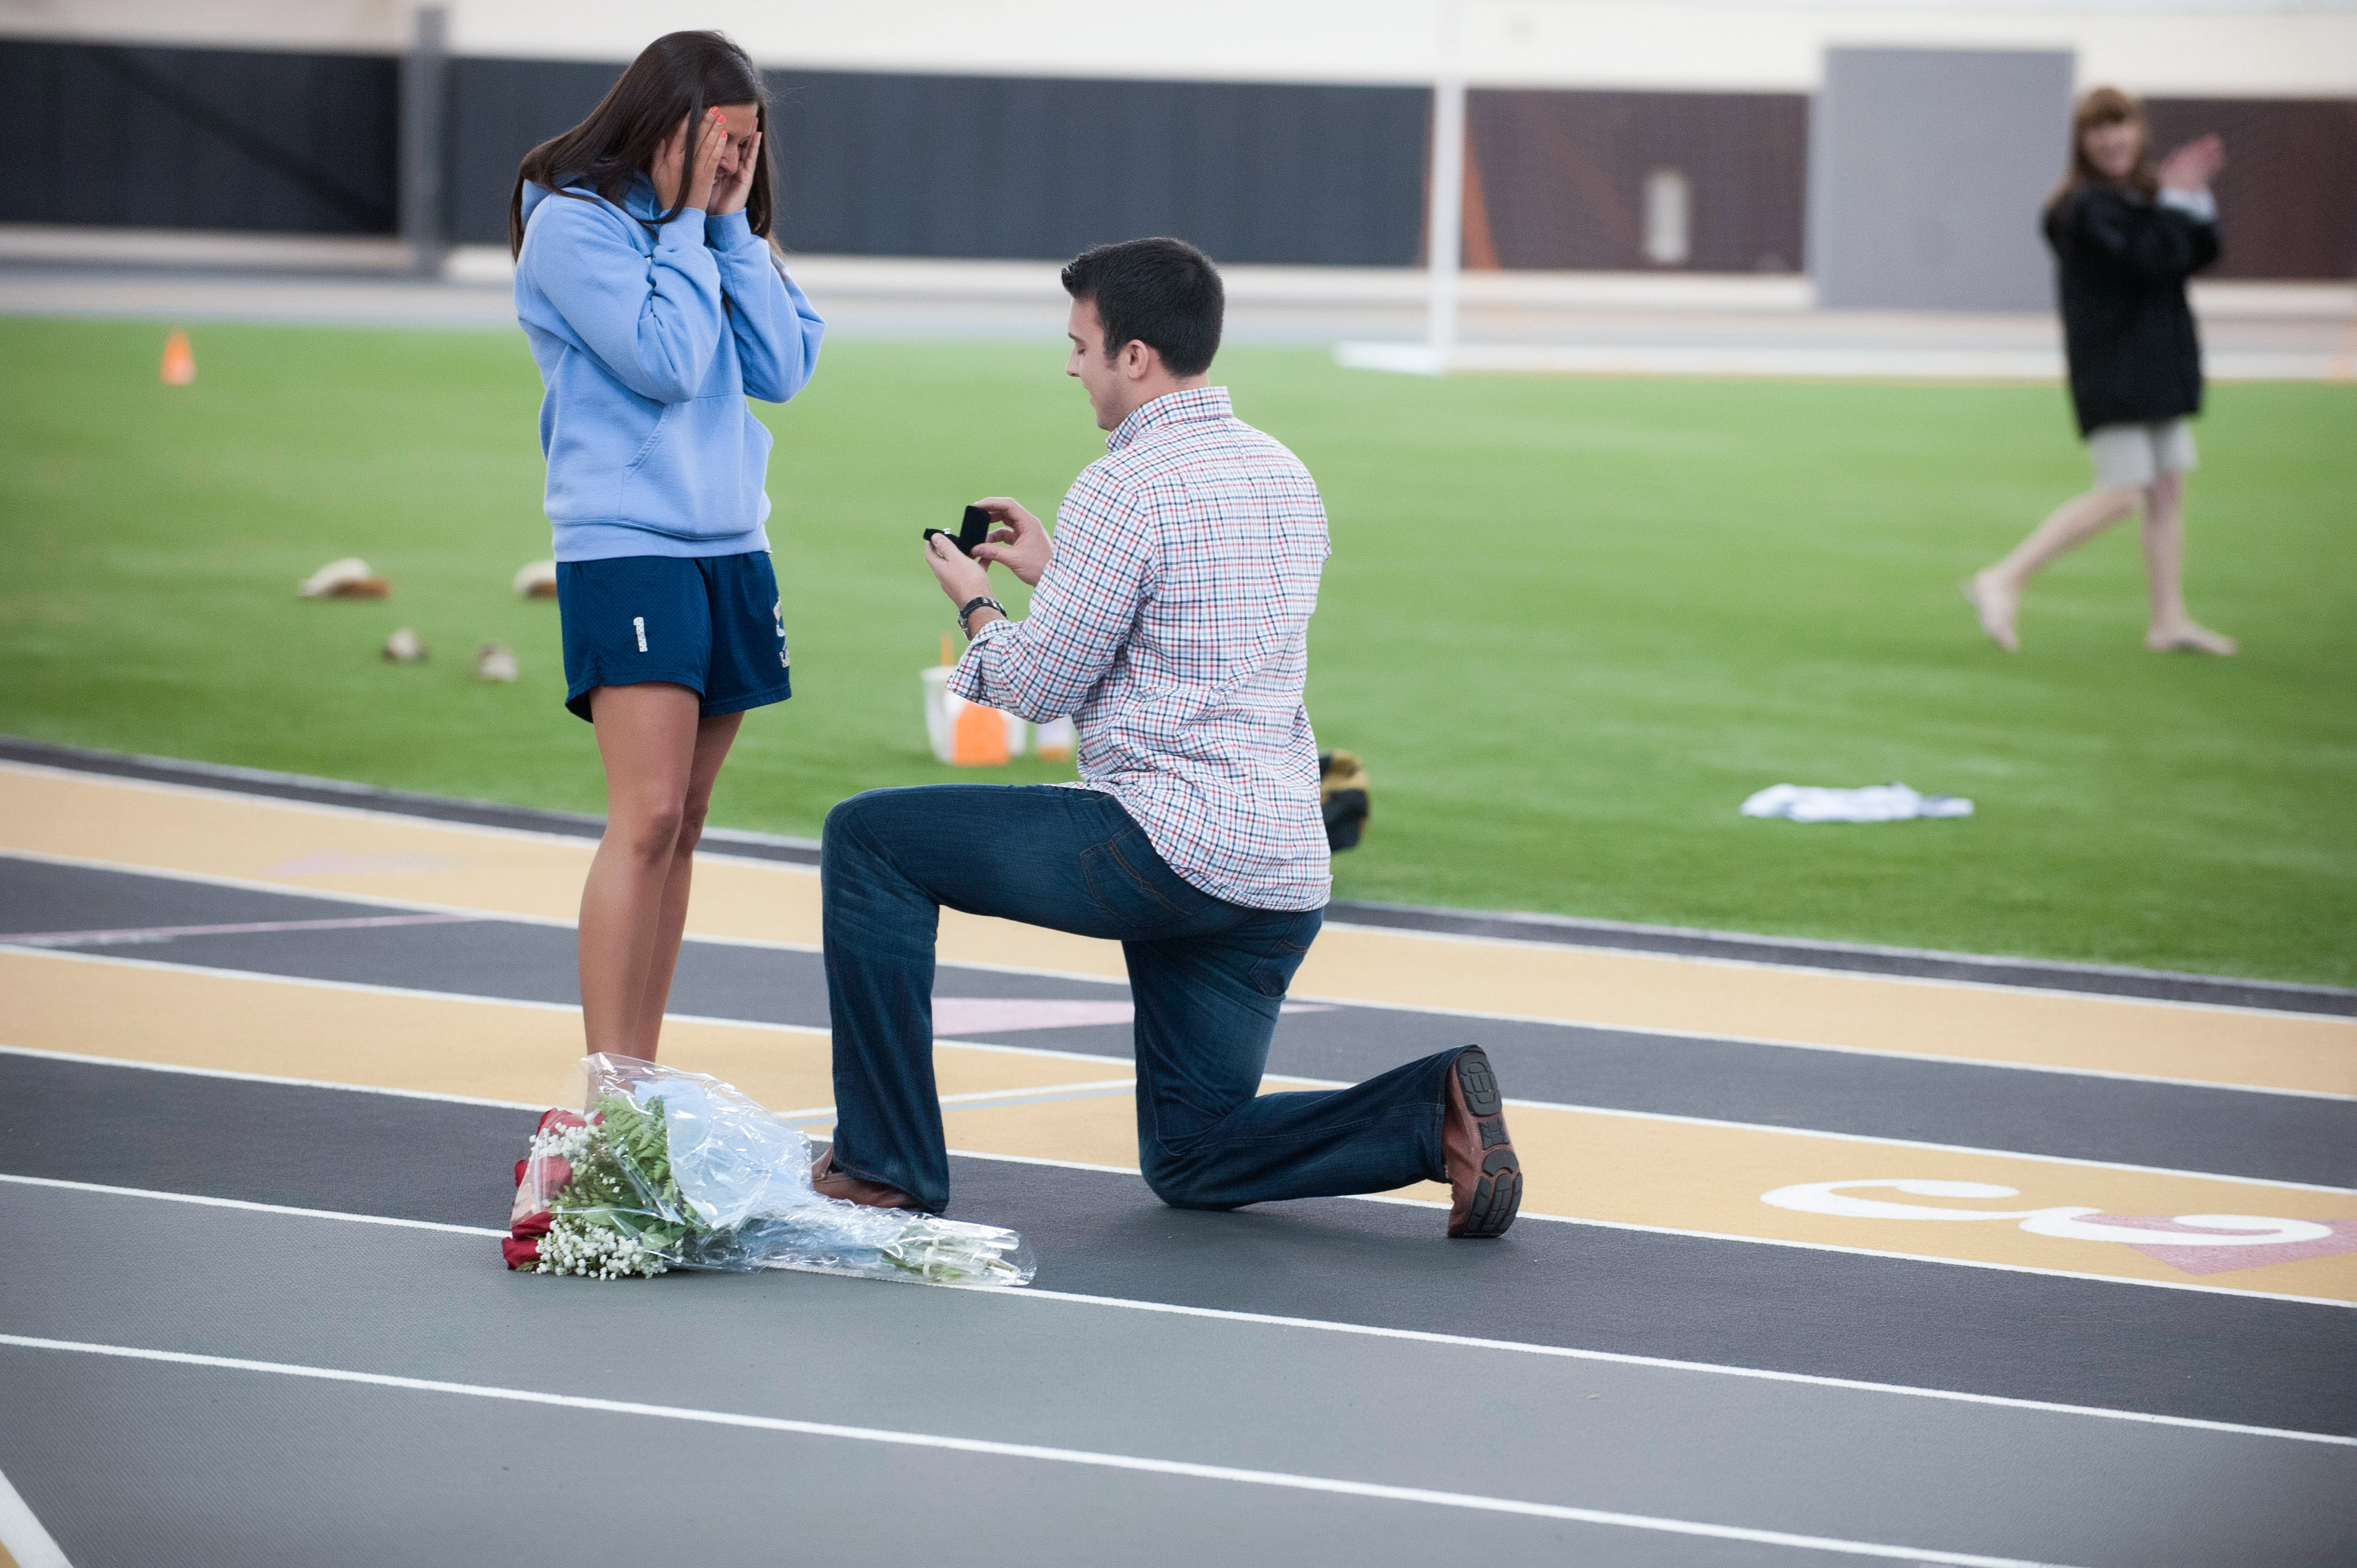 Image 10 of Marriage Proposal at Lacrosse Practice